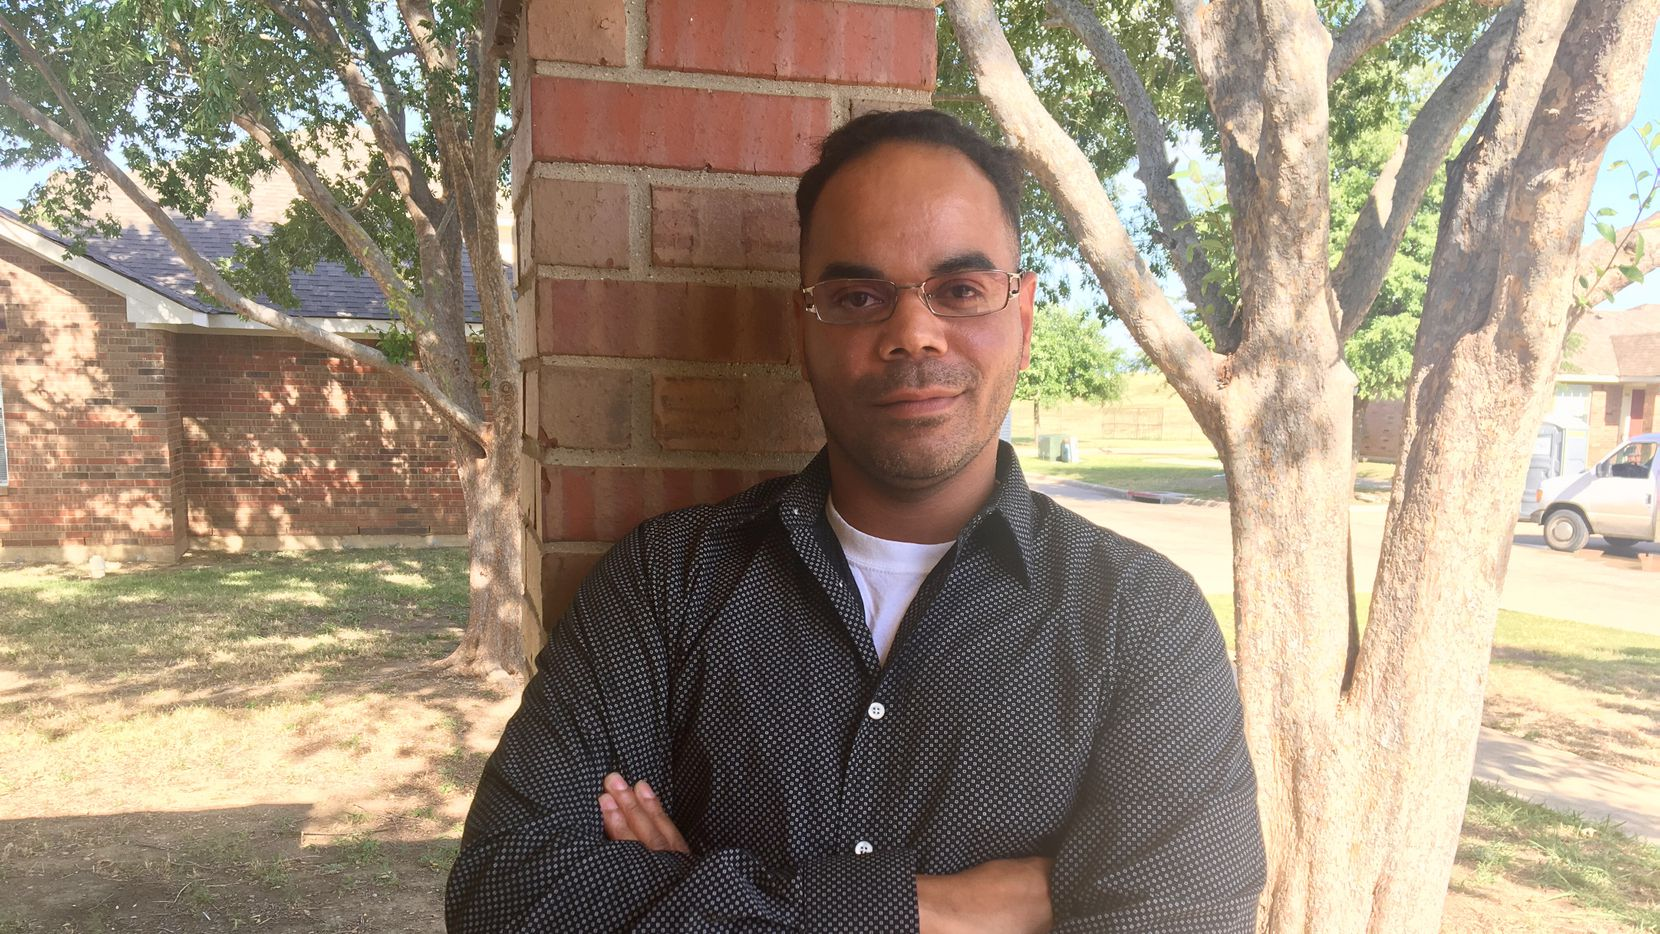 Sidney Williams, 33, is a person of interest in the Dallas County ballot fraud investigation, authorities say.